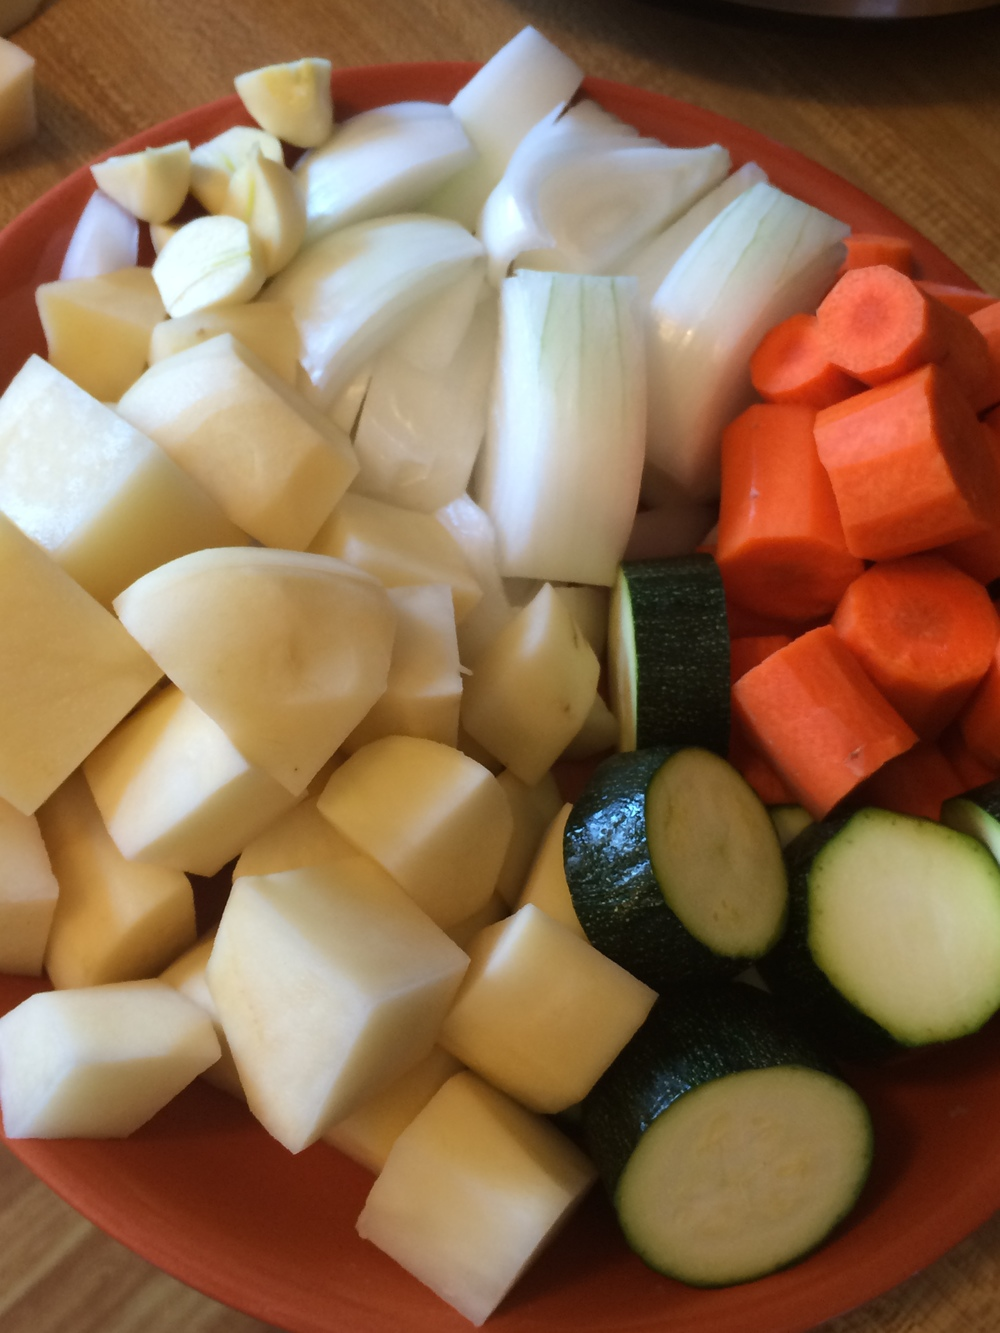 2. Cut Vegetables